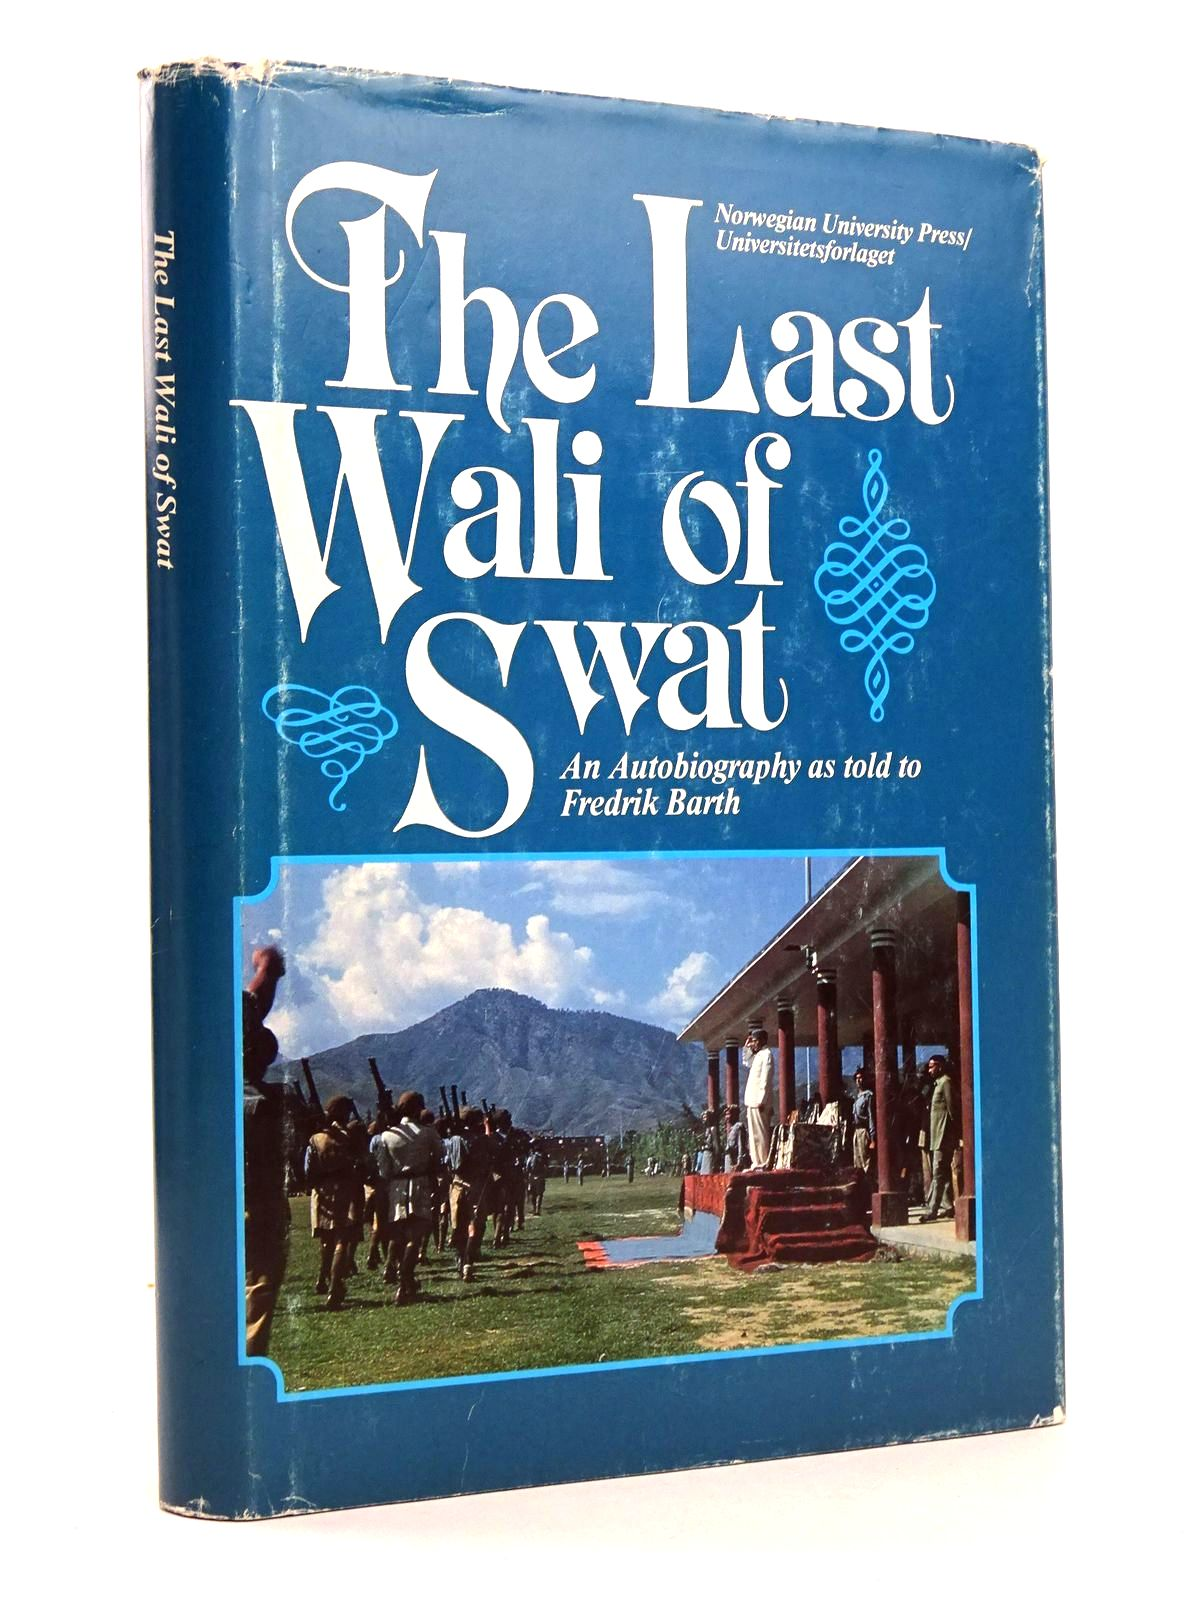 Photo of THE LAST WALI OF SWAT written by Jahanzeb, Miangul<br />Barth, Fredrik published by Norwegian University Press (STOCK CODE: 1818625)  for sale by Stella & Rose's Books